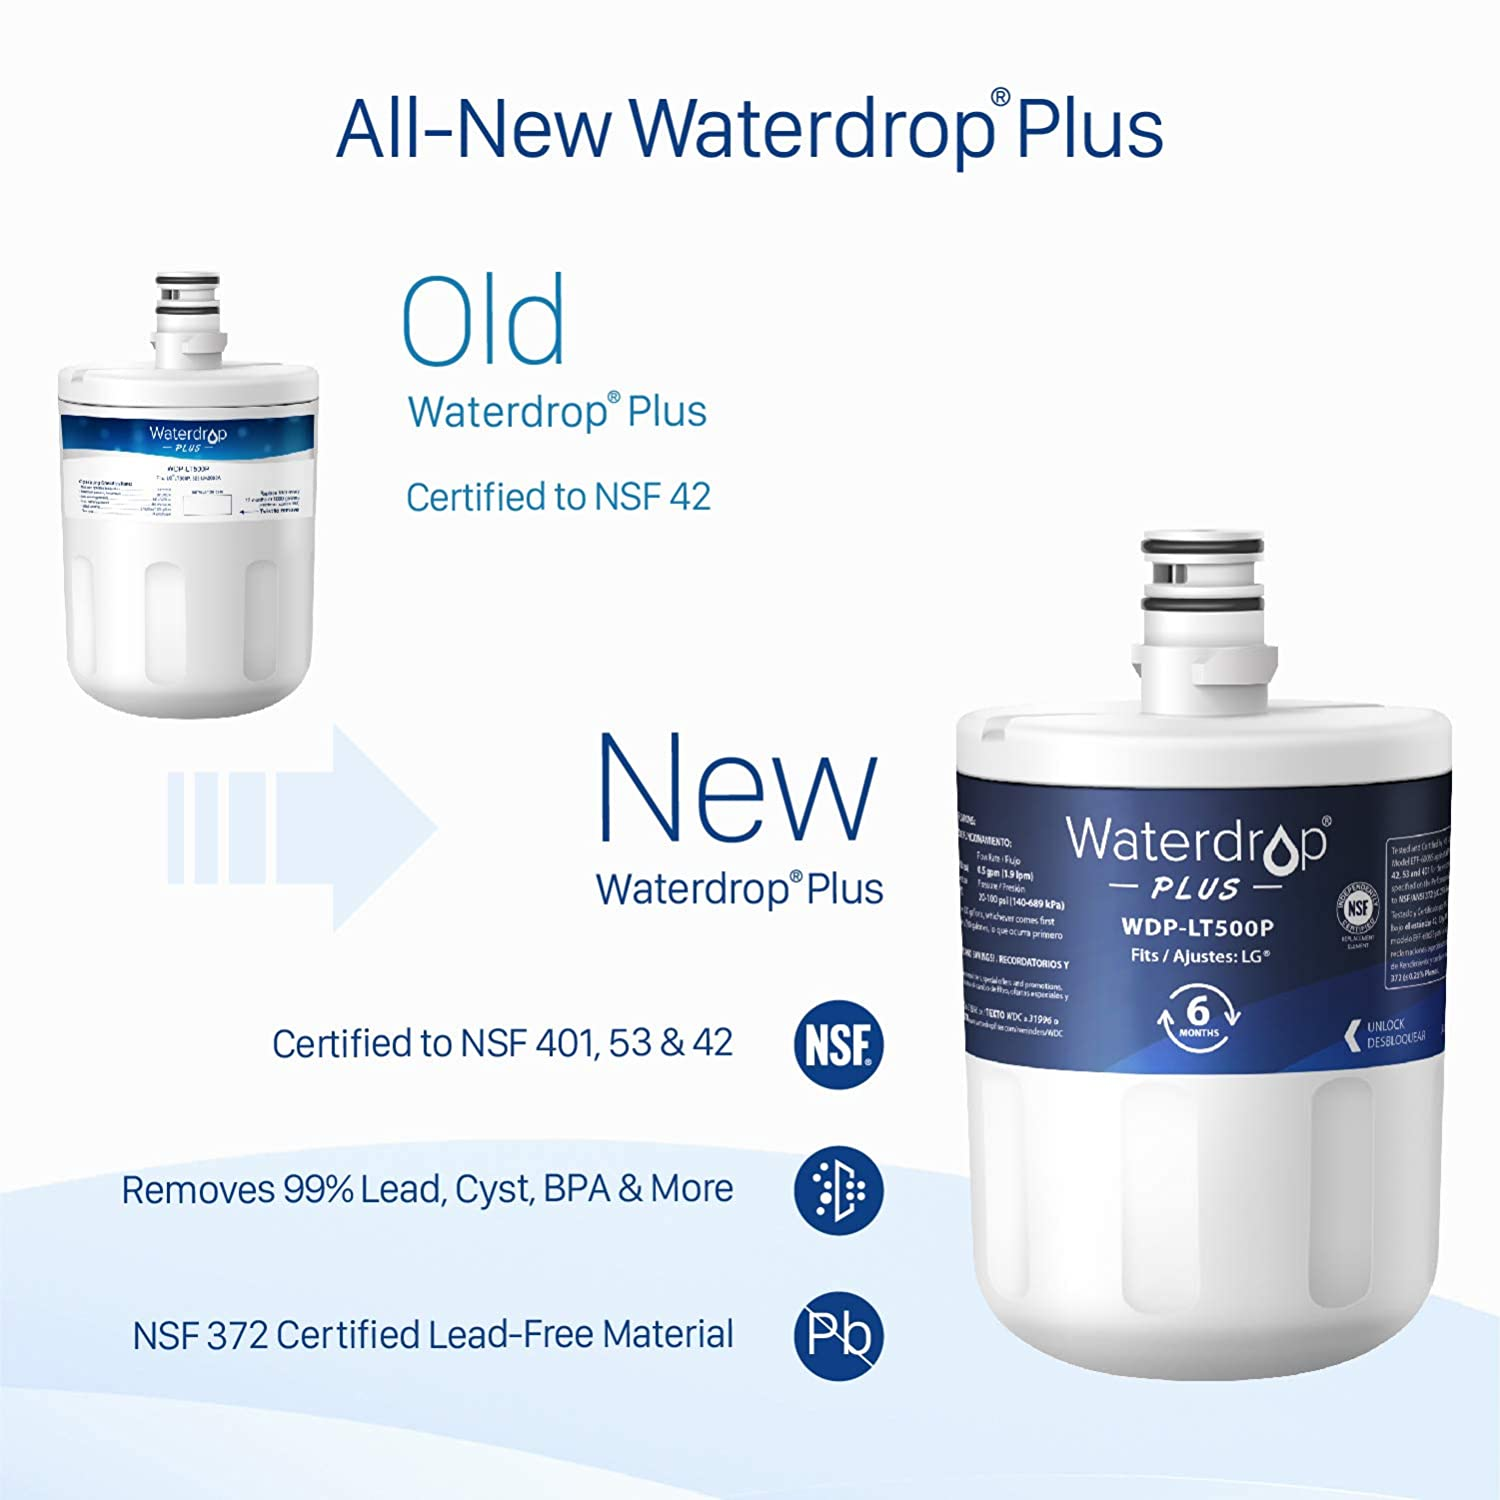 Reduce Lead Kenmore GEN11042FR-08 469890 Benzene and More Ltd. ADQ72910907 Waterdrop Plus Refrigerator Water Filter ADQ72910901 Chlorine 9890 Compatible with LG LT500P Cyst 46-9890 NSF 401/&53/&42 Certified Qingdao Ecopure Filter Co 5231JA2002A